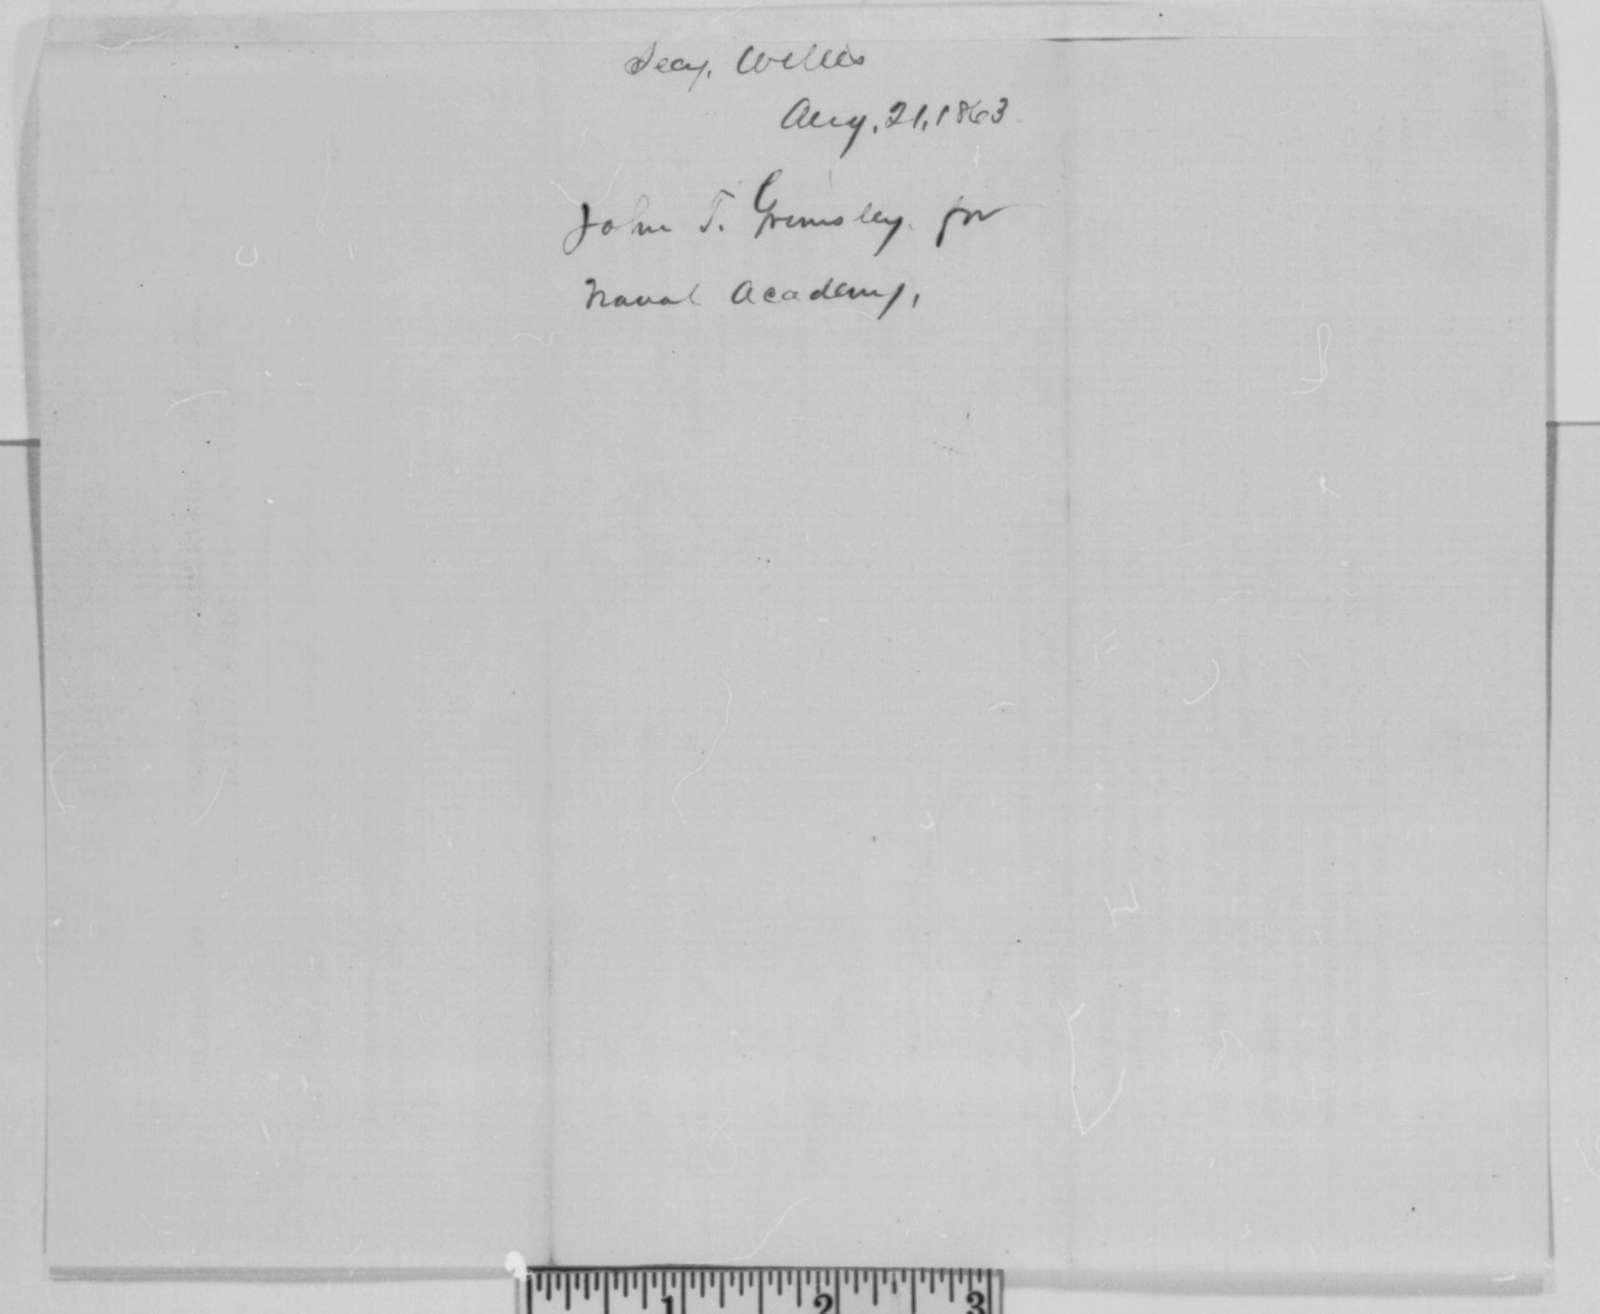 Gideon Welles to John T. Grimsley, Friday, August 21, 1863  (Permission to attend examinations for the Naval Academy)